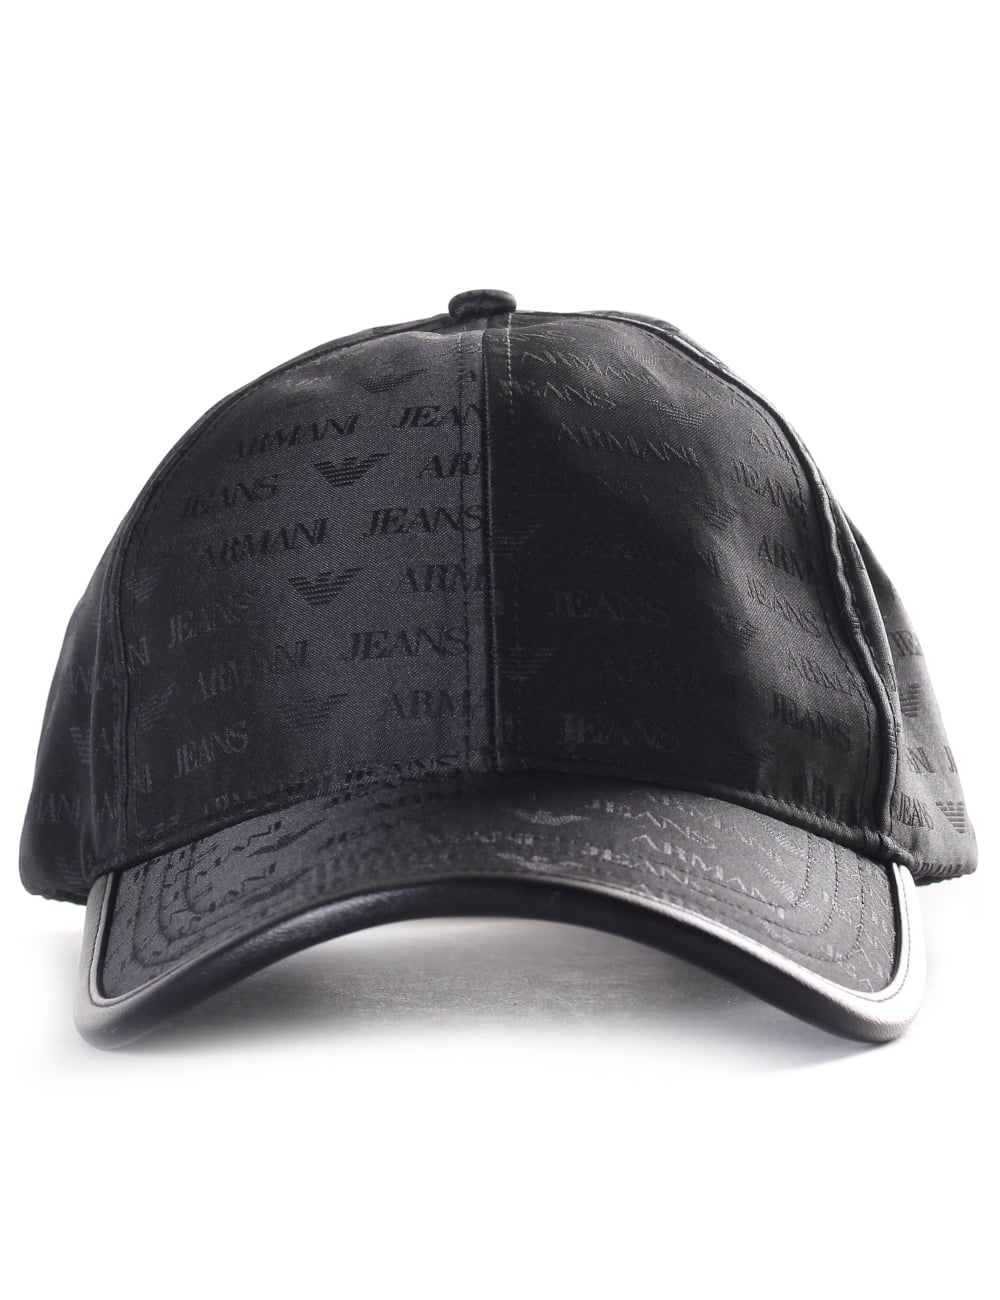 Armani Jeans 934500 Men s Repeat Logo Baseball Cap Black e424ec0f46c